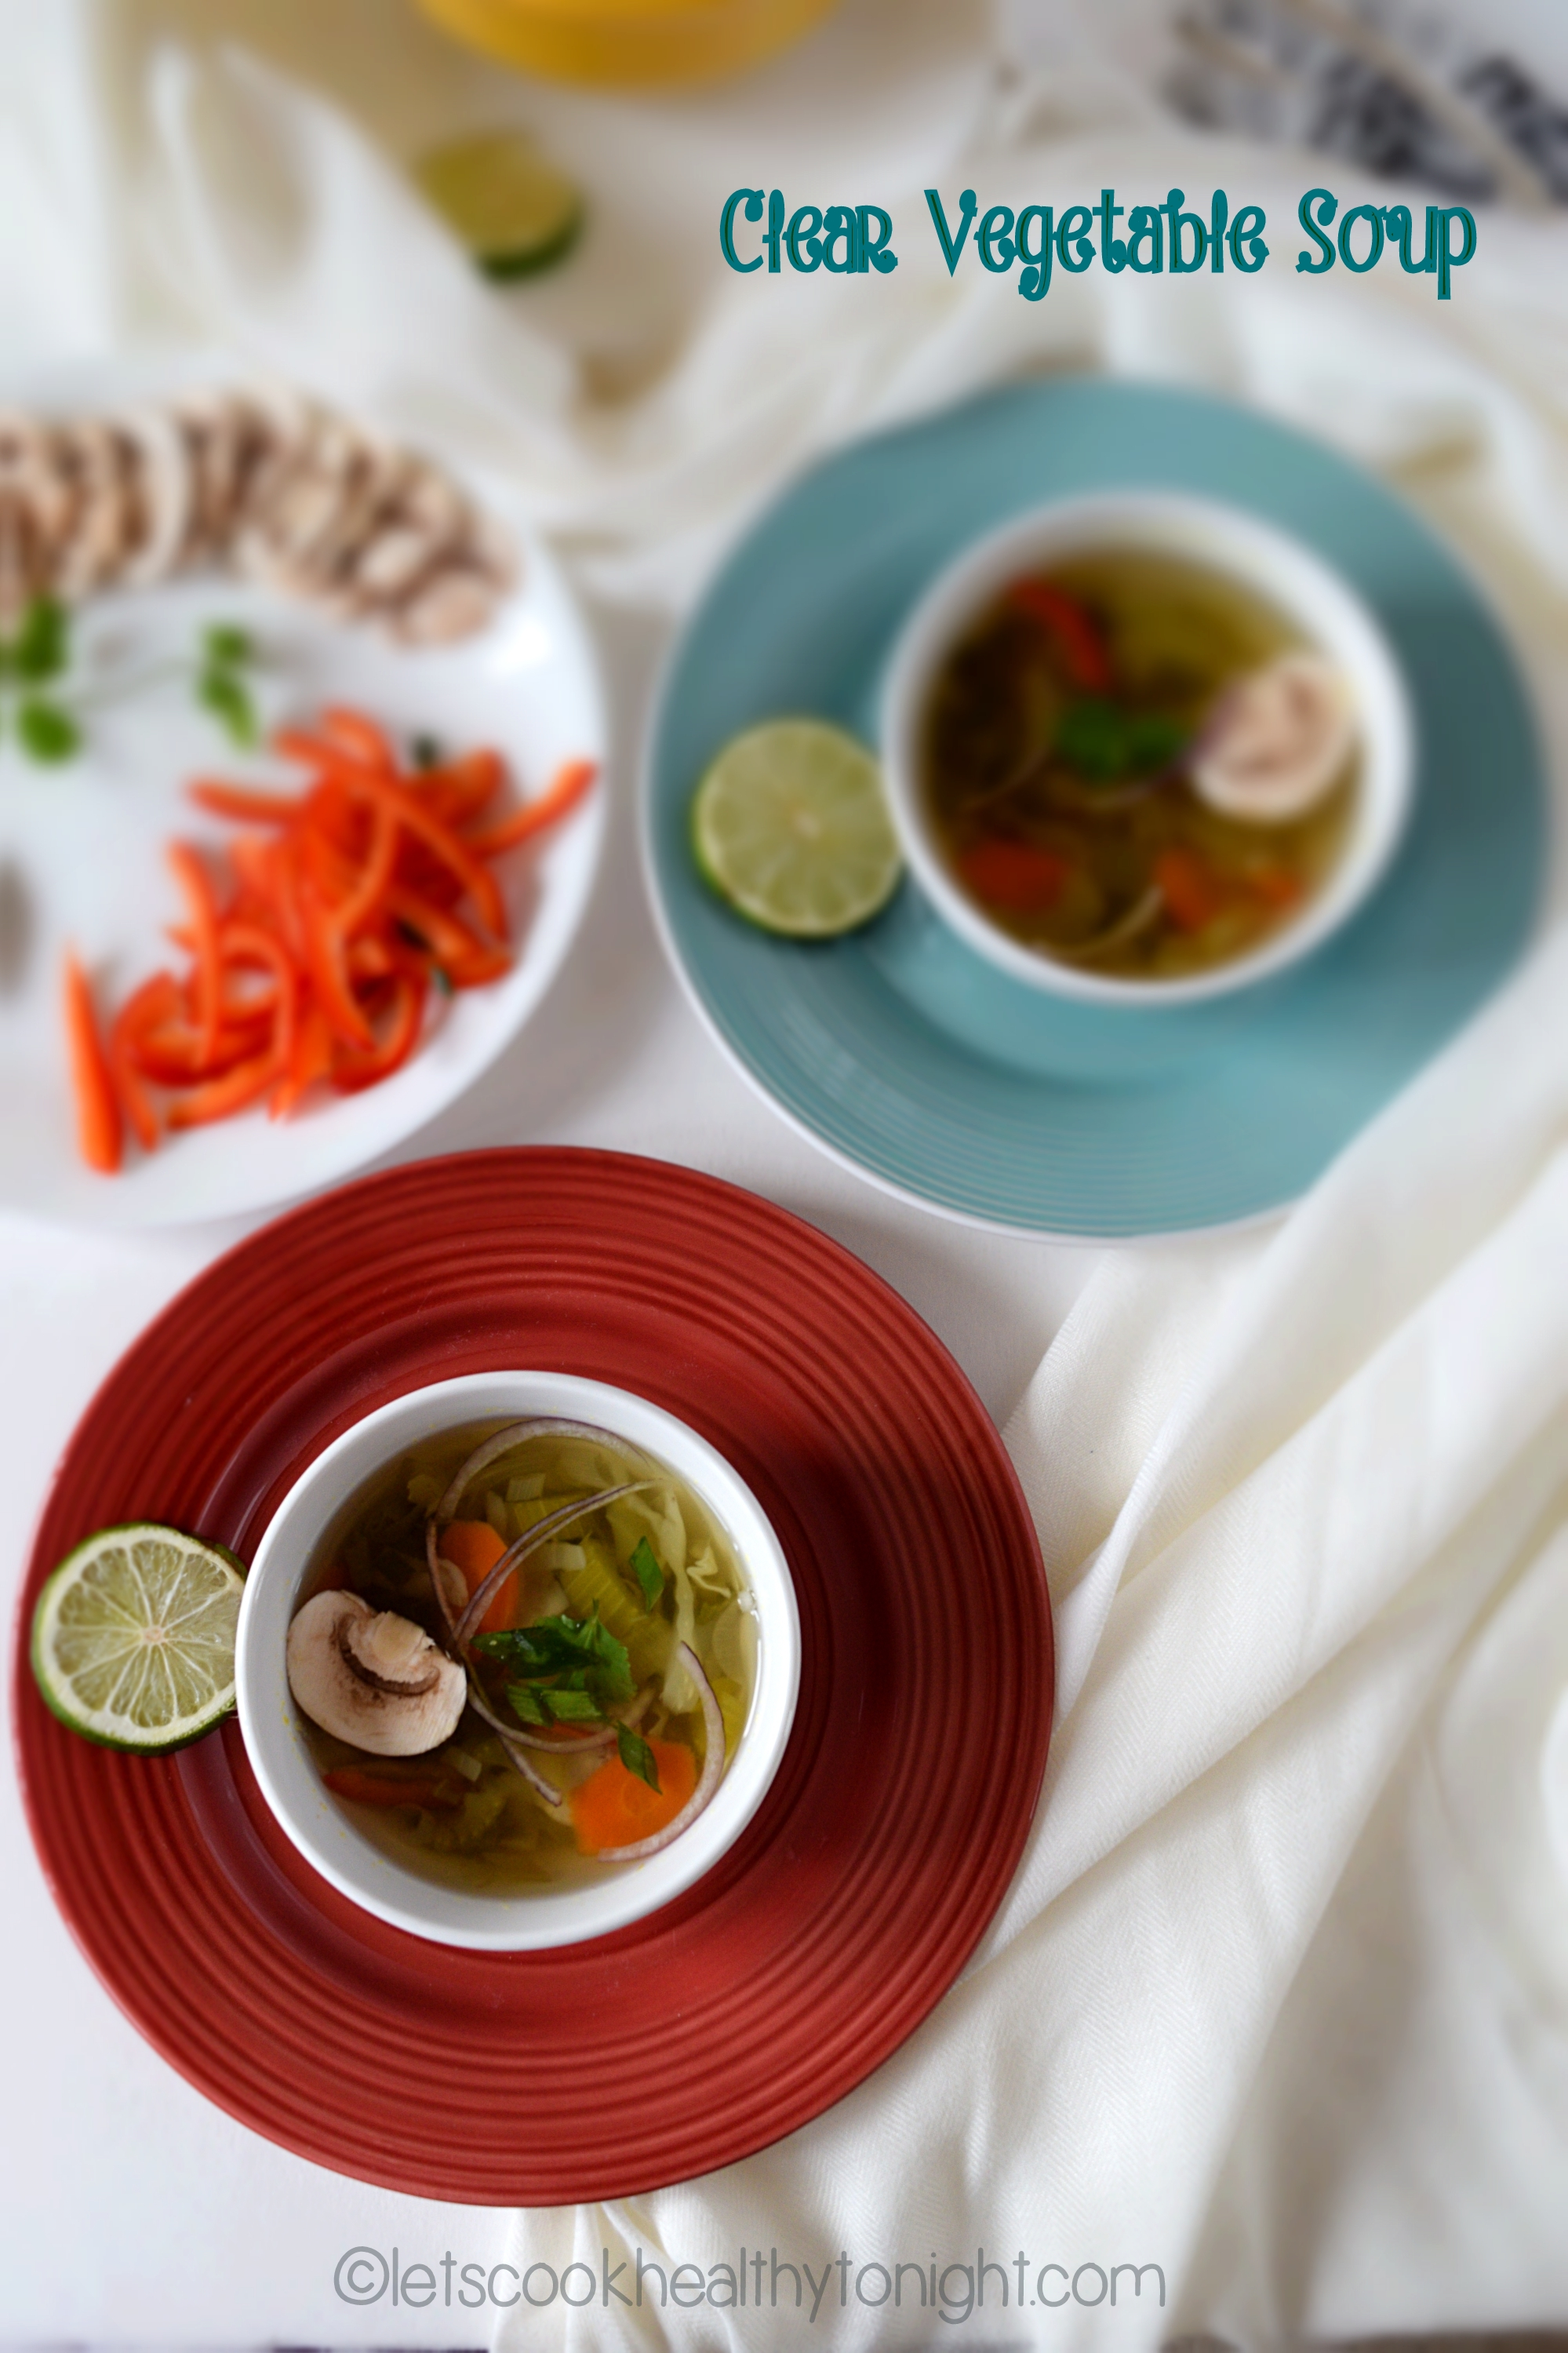 Clear Vegetable Soup